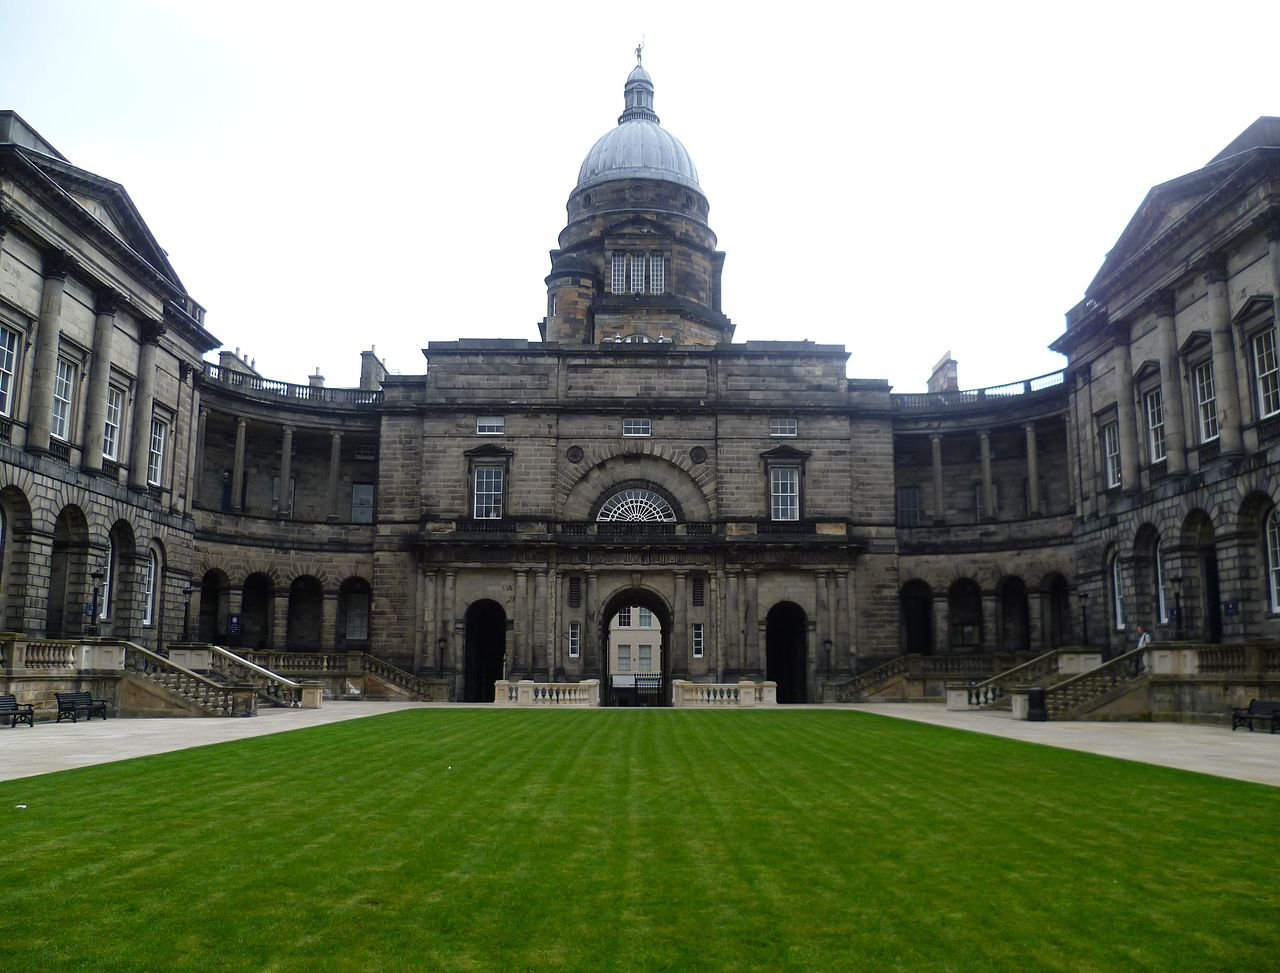 'Old College of Edinburgh University' by Kim Traynor - Own work. Licensed under CC BY-SA 3.0 via Commons - https://commons.wikimedia.org/wiki/File:Old_College_of_Edinburgh_University.JPG#/media/File:Old_College_of_Edinburgh_University.JPG